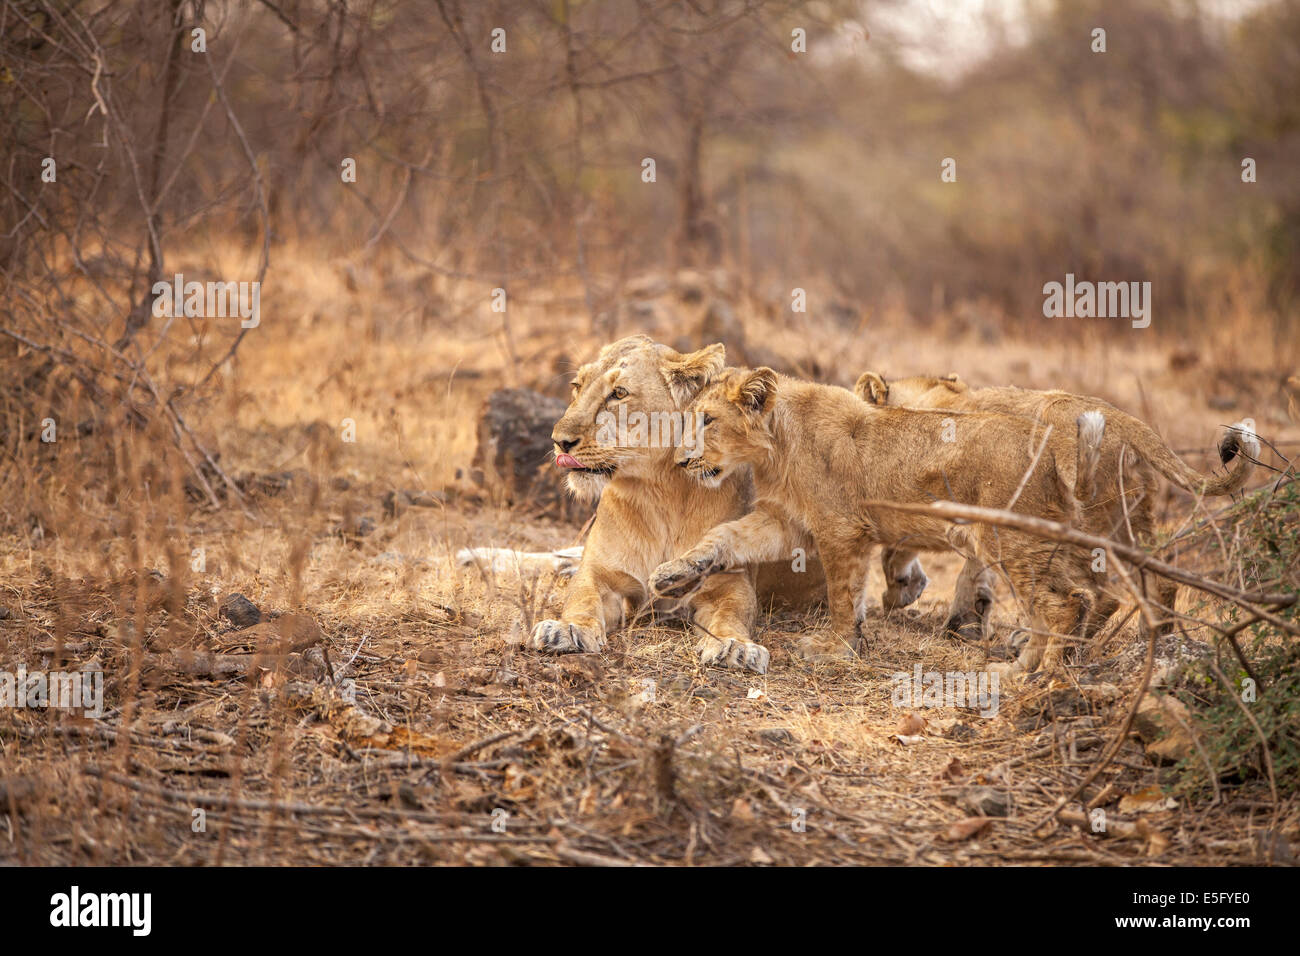 Asiatic Lions [Panthera leo persica] family at Gir Forest, Gujarat India. - Stock Image